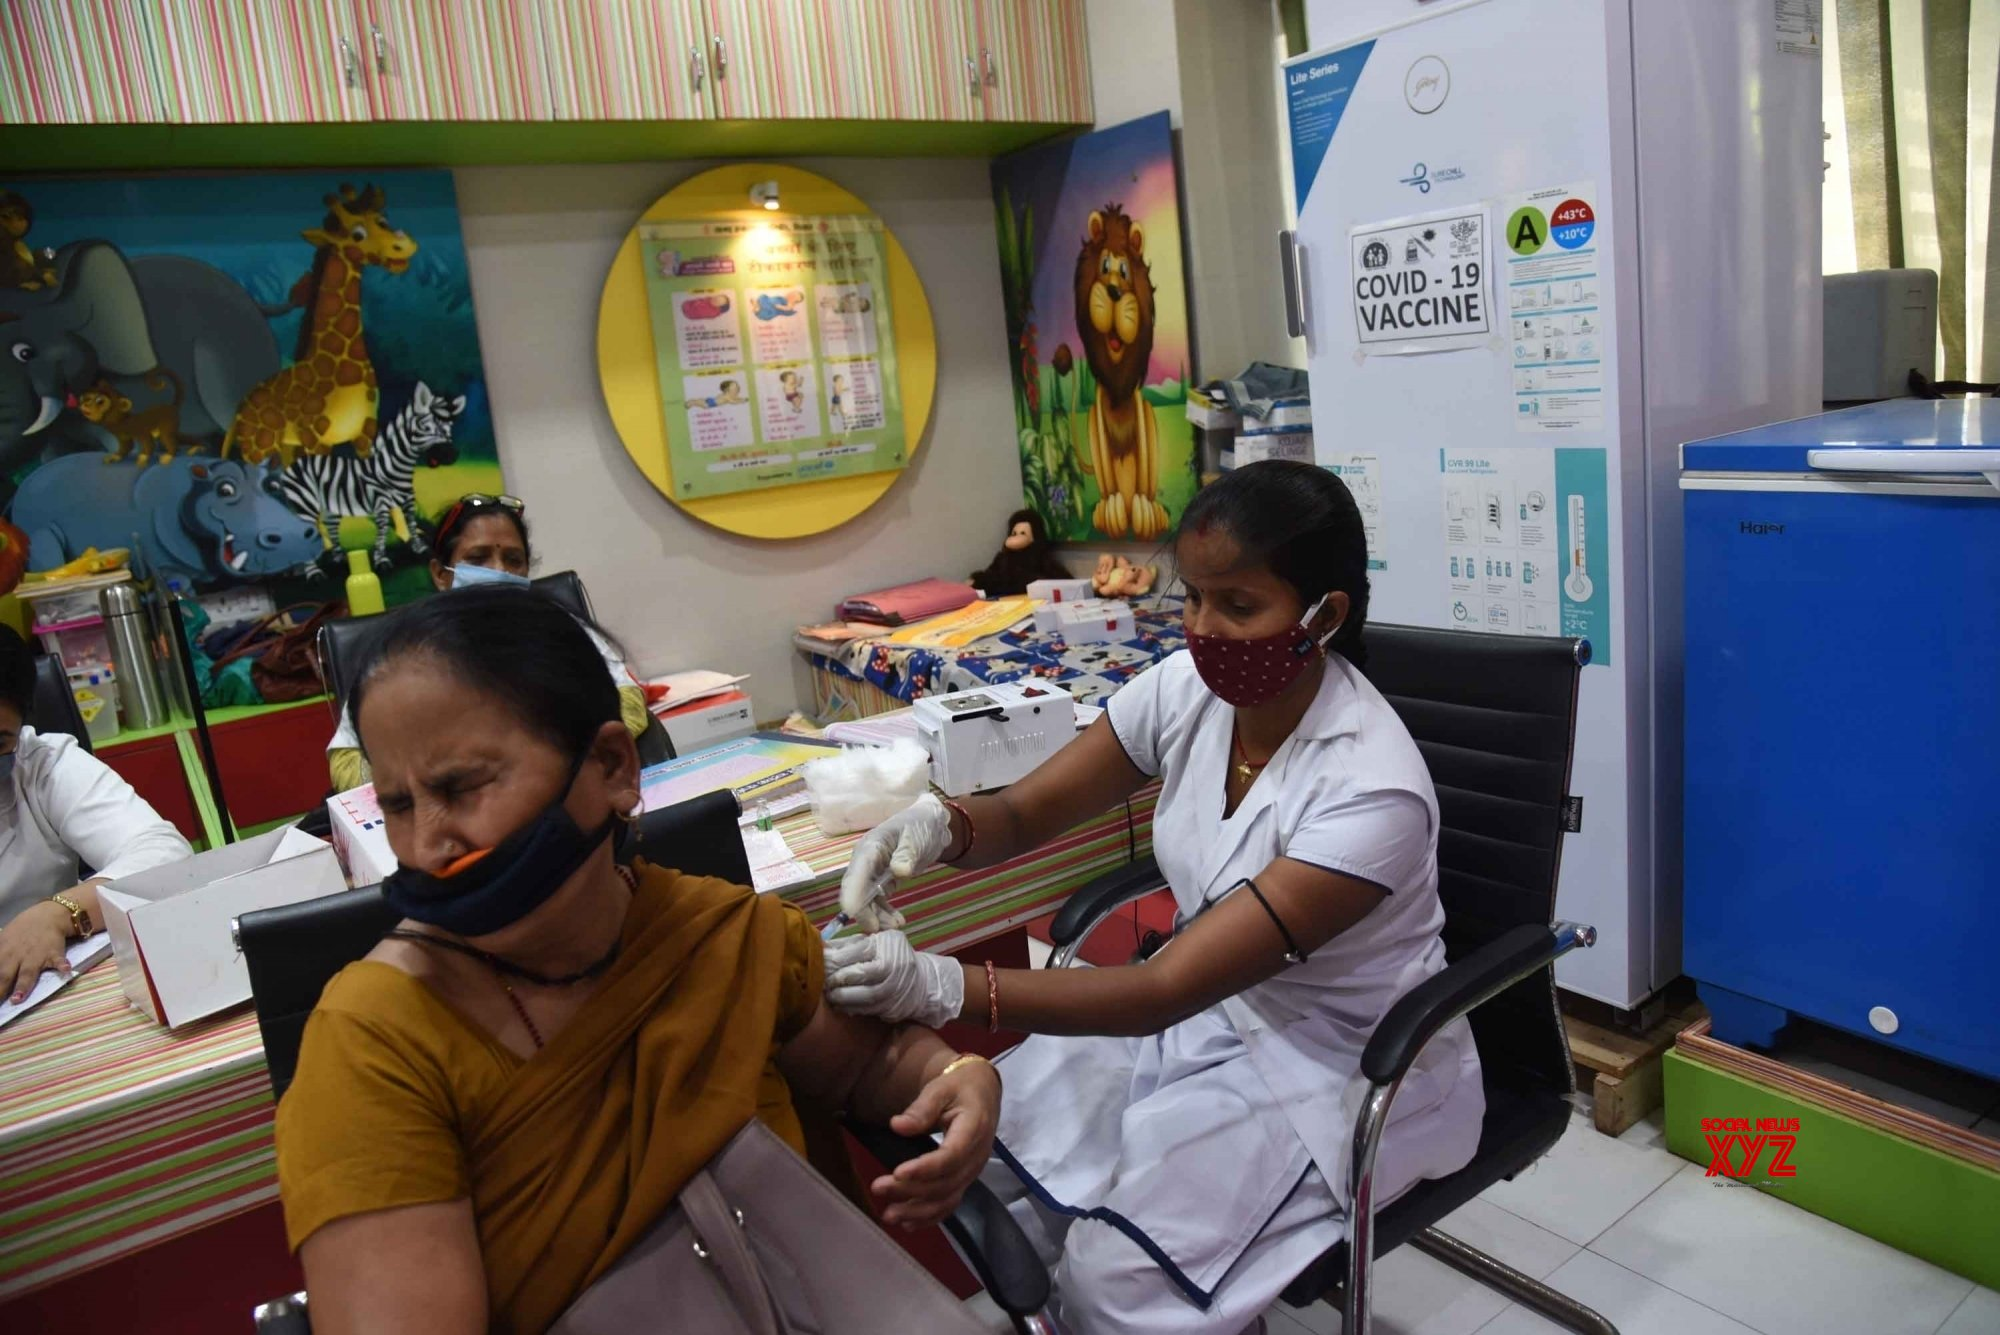 Patna: Beneficiaries receive the first dose of COVID - 19 vaccine during the third phase of the countrywide inoculation drive, in Patna, Thursday, April 8, 2021. #Gallery